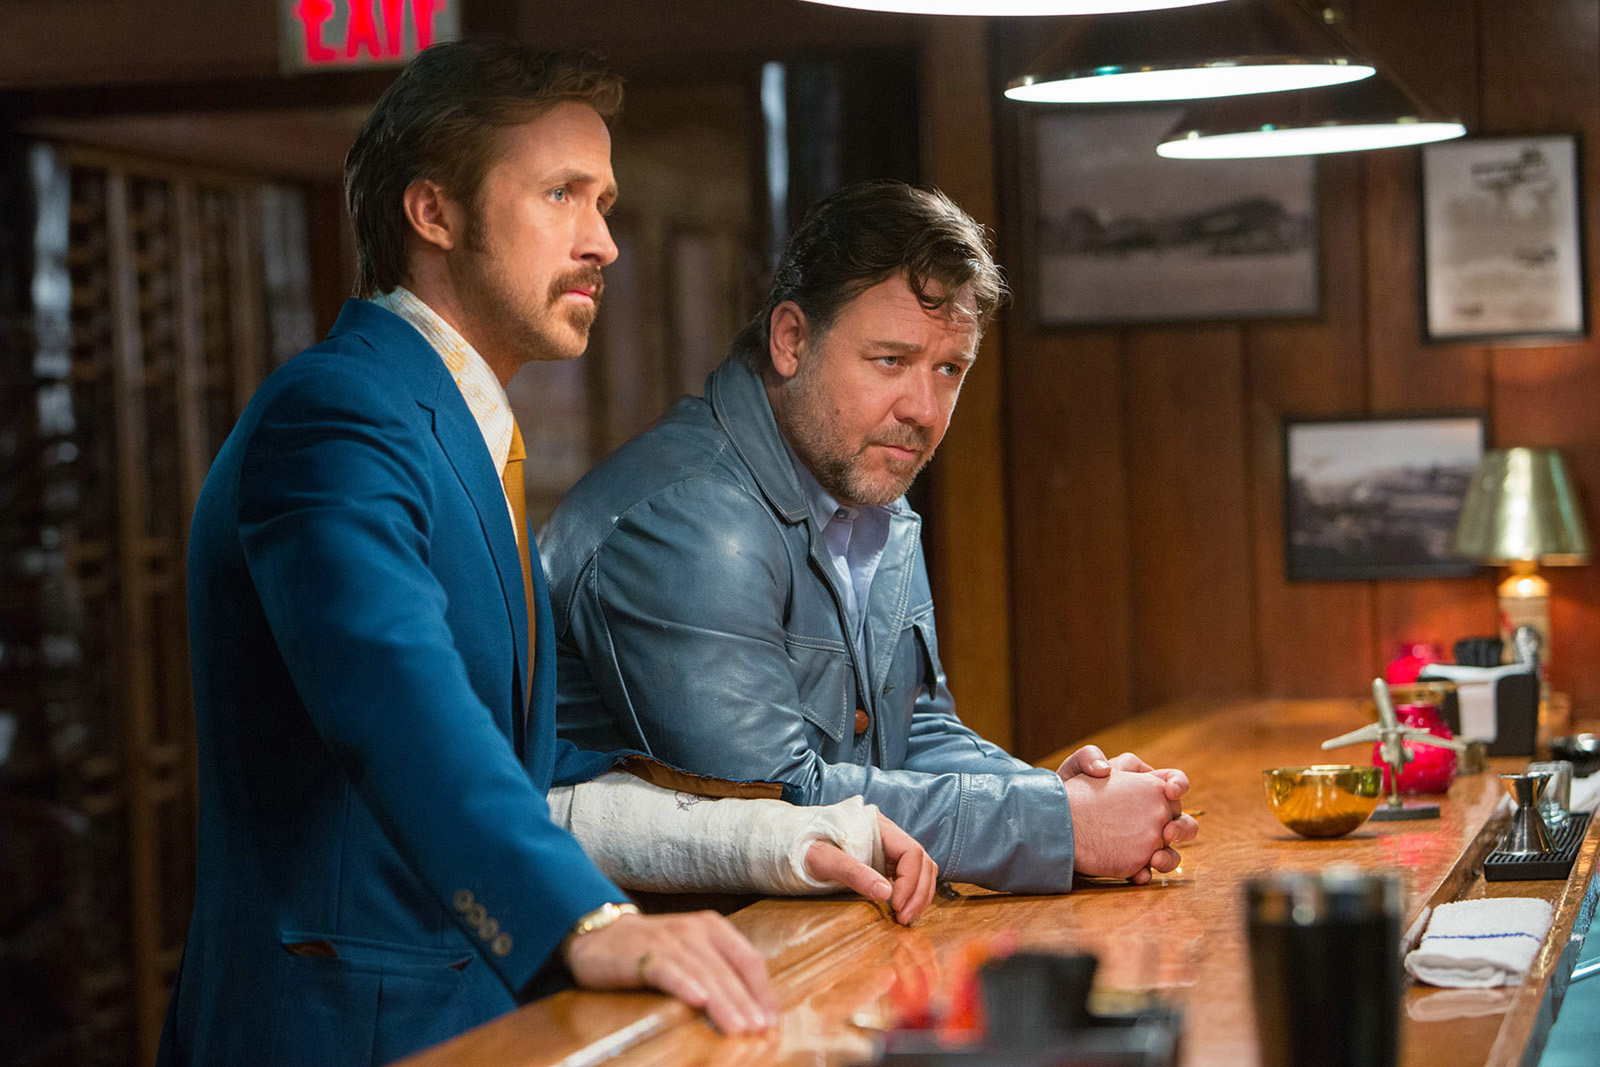 THE NICE GUYS - Image 16 Russell Crowe Ryan Gosling 2016 - Go with the Blog